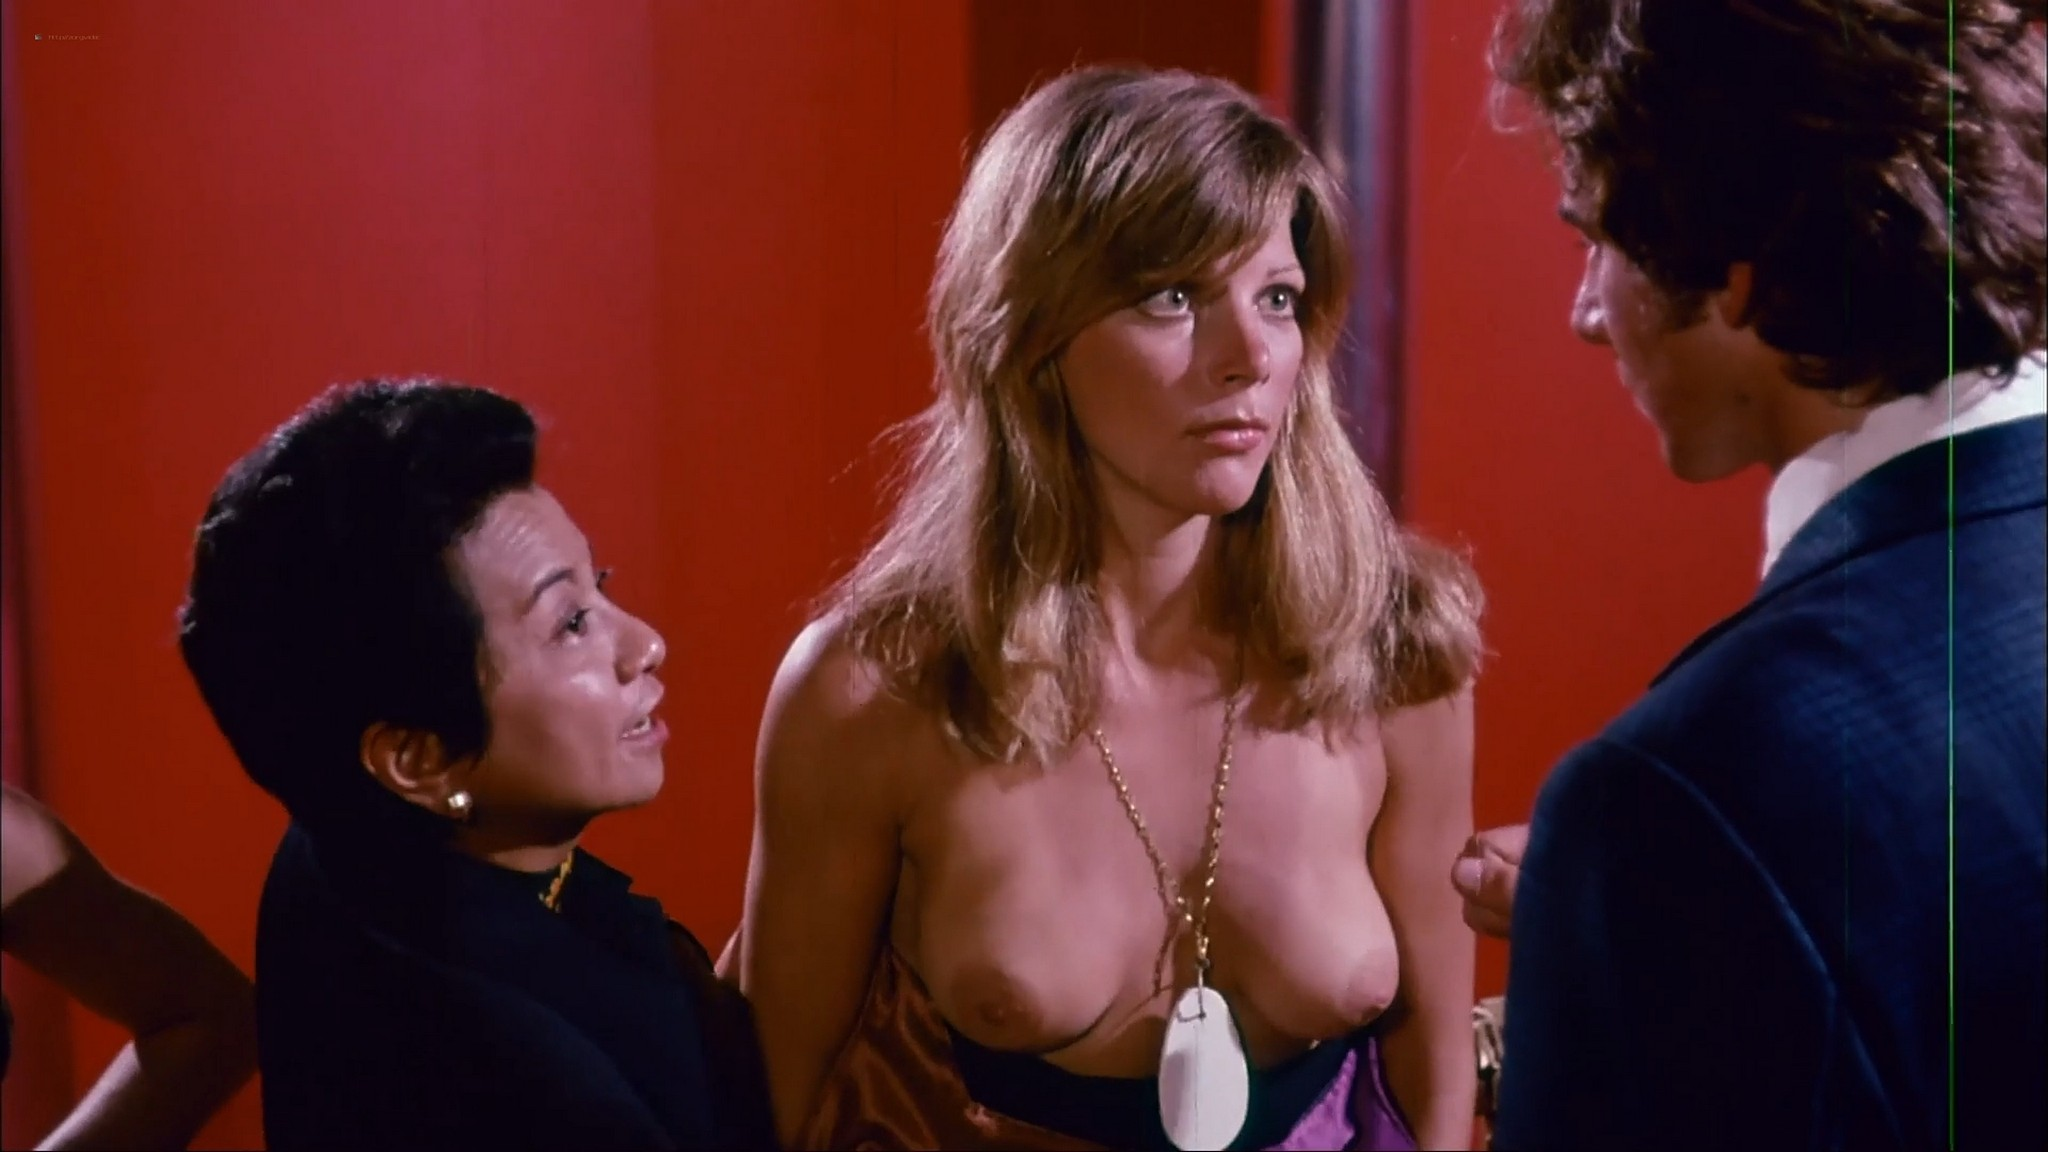 Lenore Kasdorf bude sex Pat Anderson Lyllah Torena and others all nude Fly Me 1973 1080p Web 18